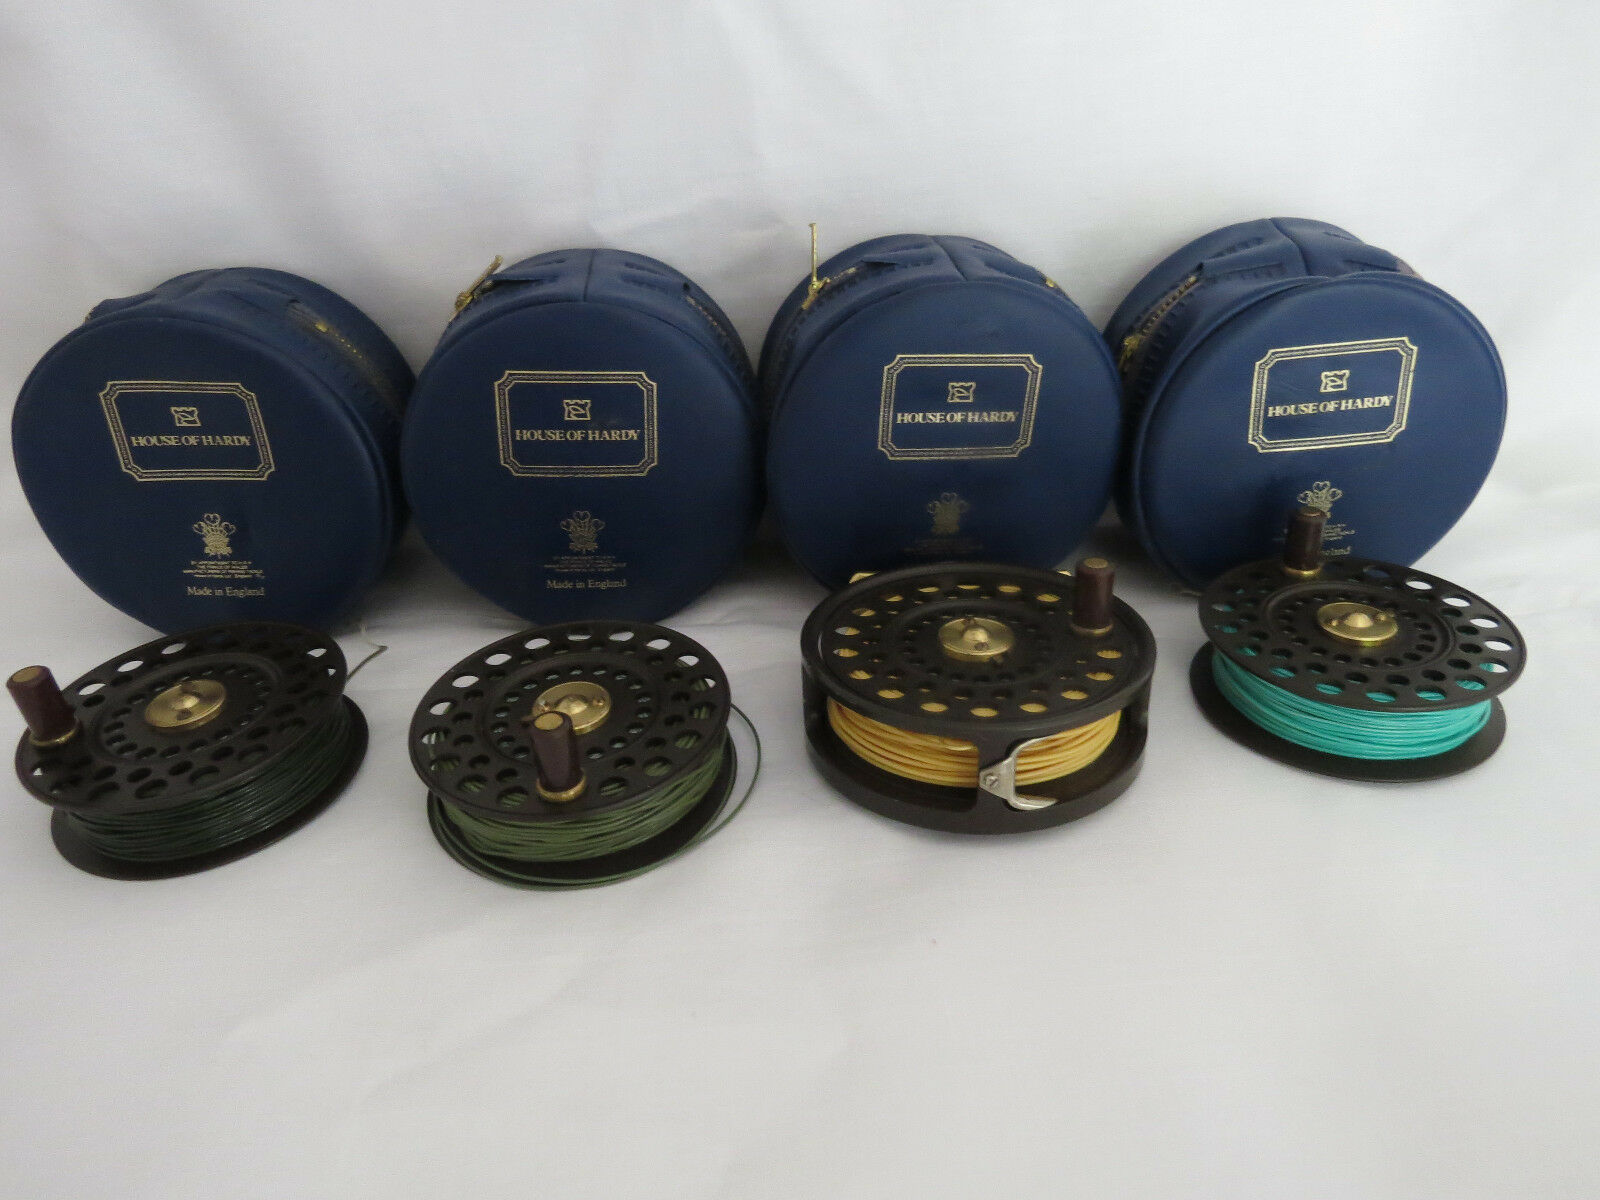 HARDY goldEN LRH LIGHTWEIGHT FLY REEL +3 SPARE SPOOLS 4 HARDY CASES AND 4LINES